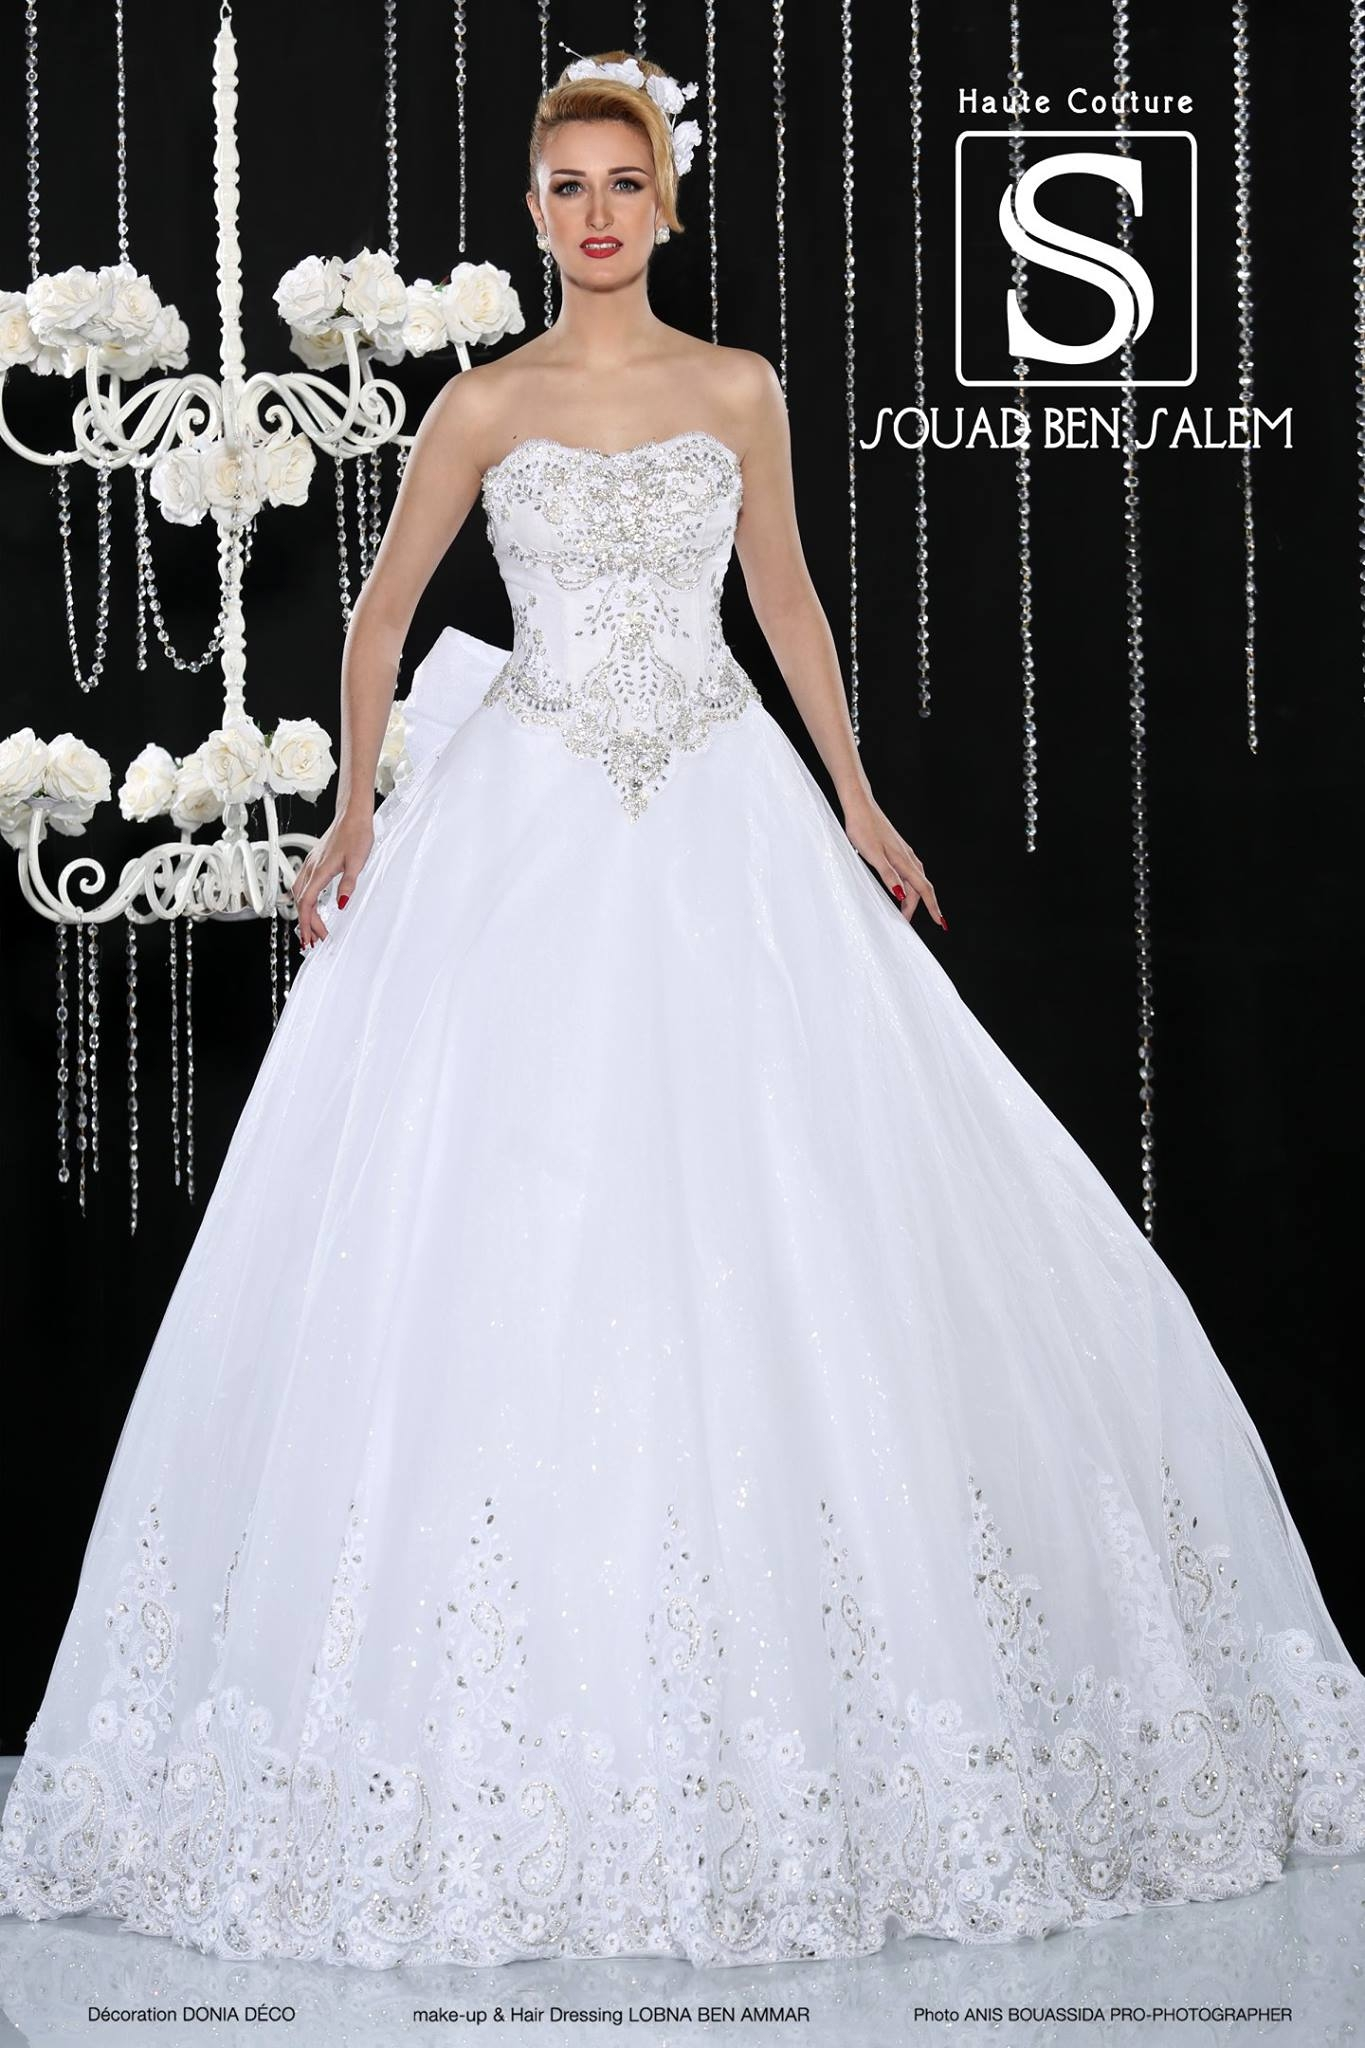 9c23b3246b3 Creation robe mariée · Collection robe de mariée ...